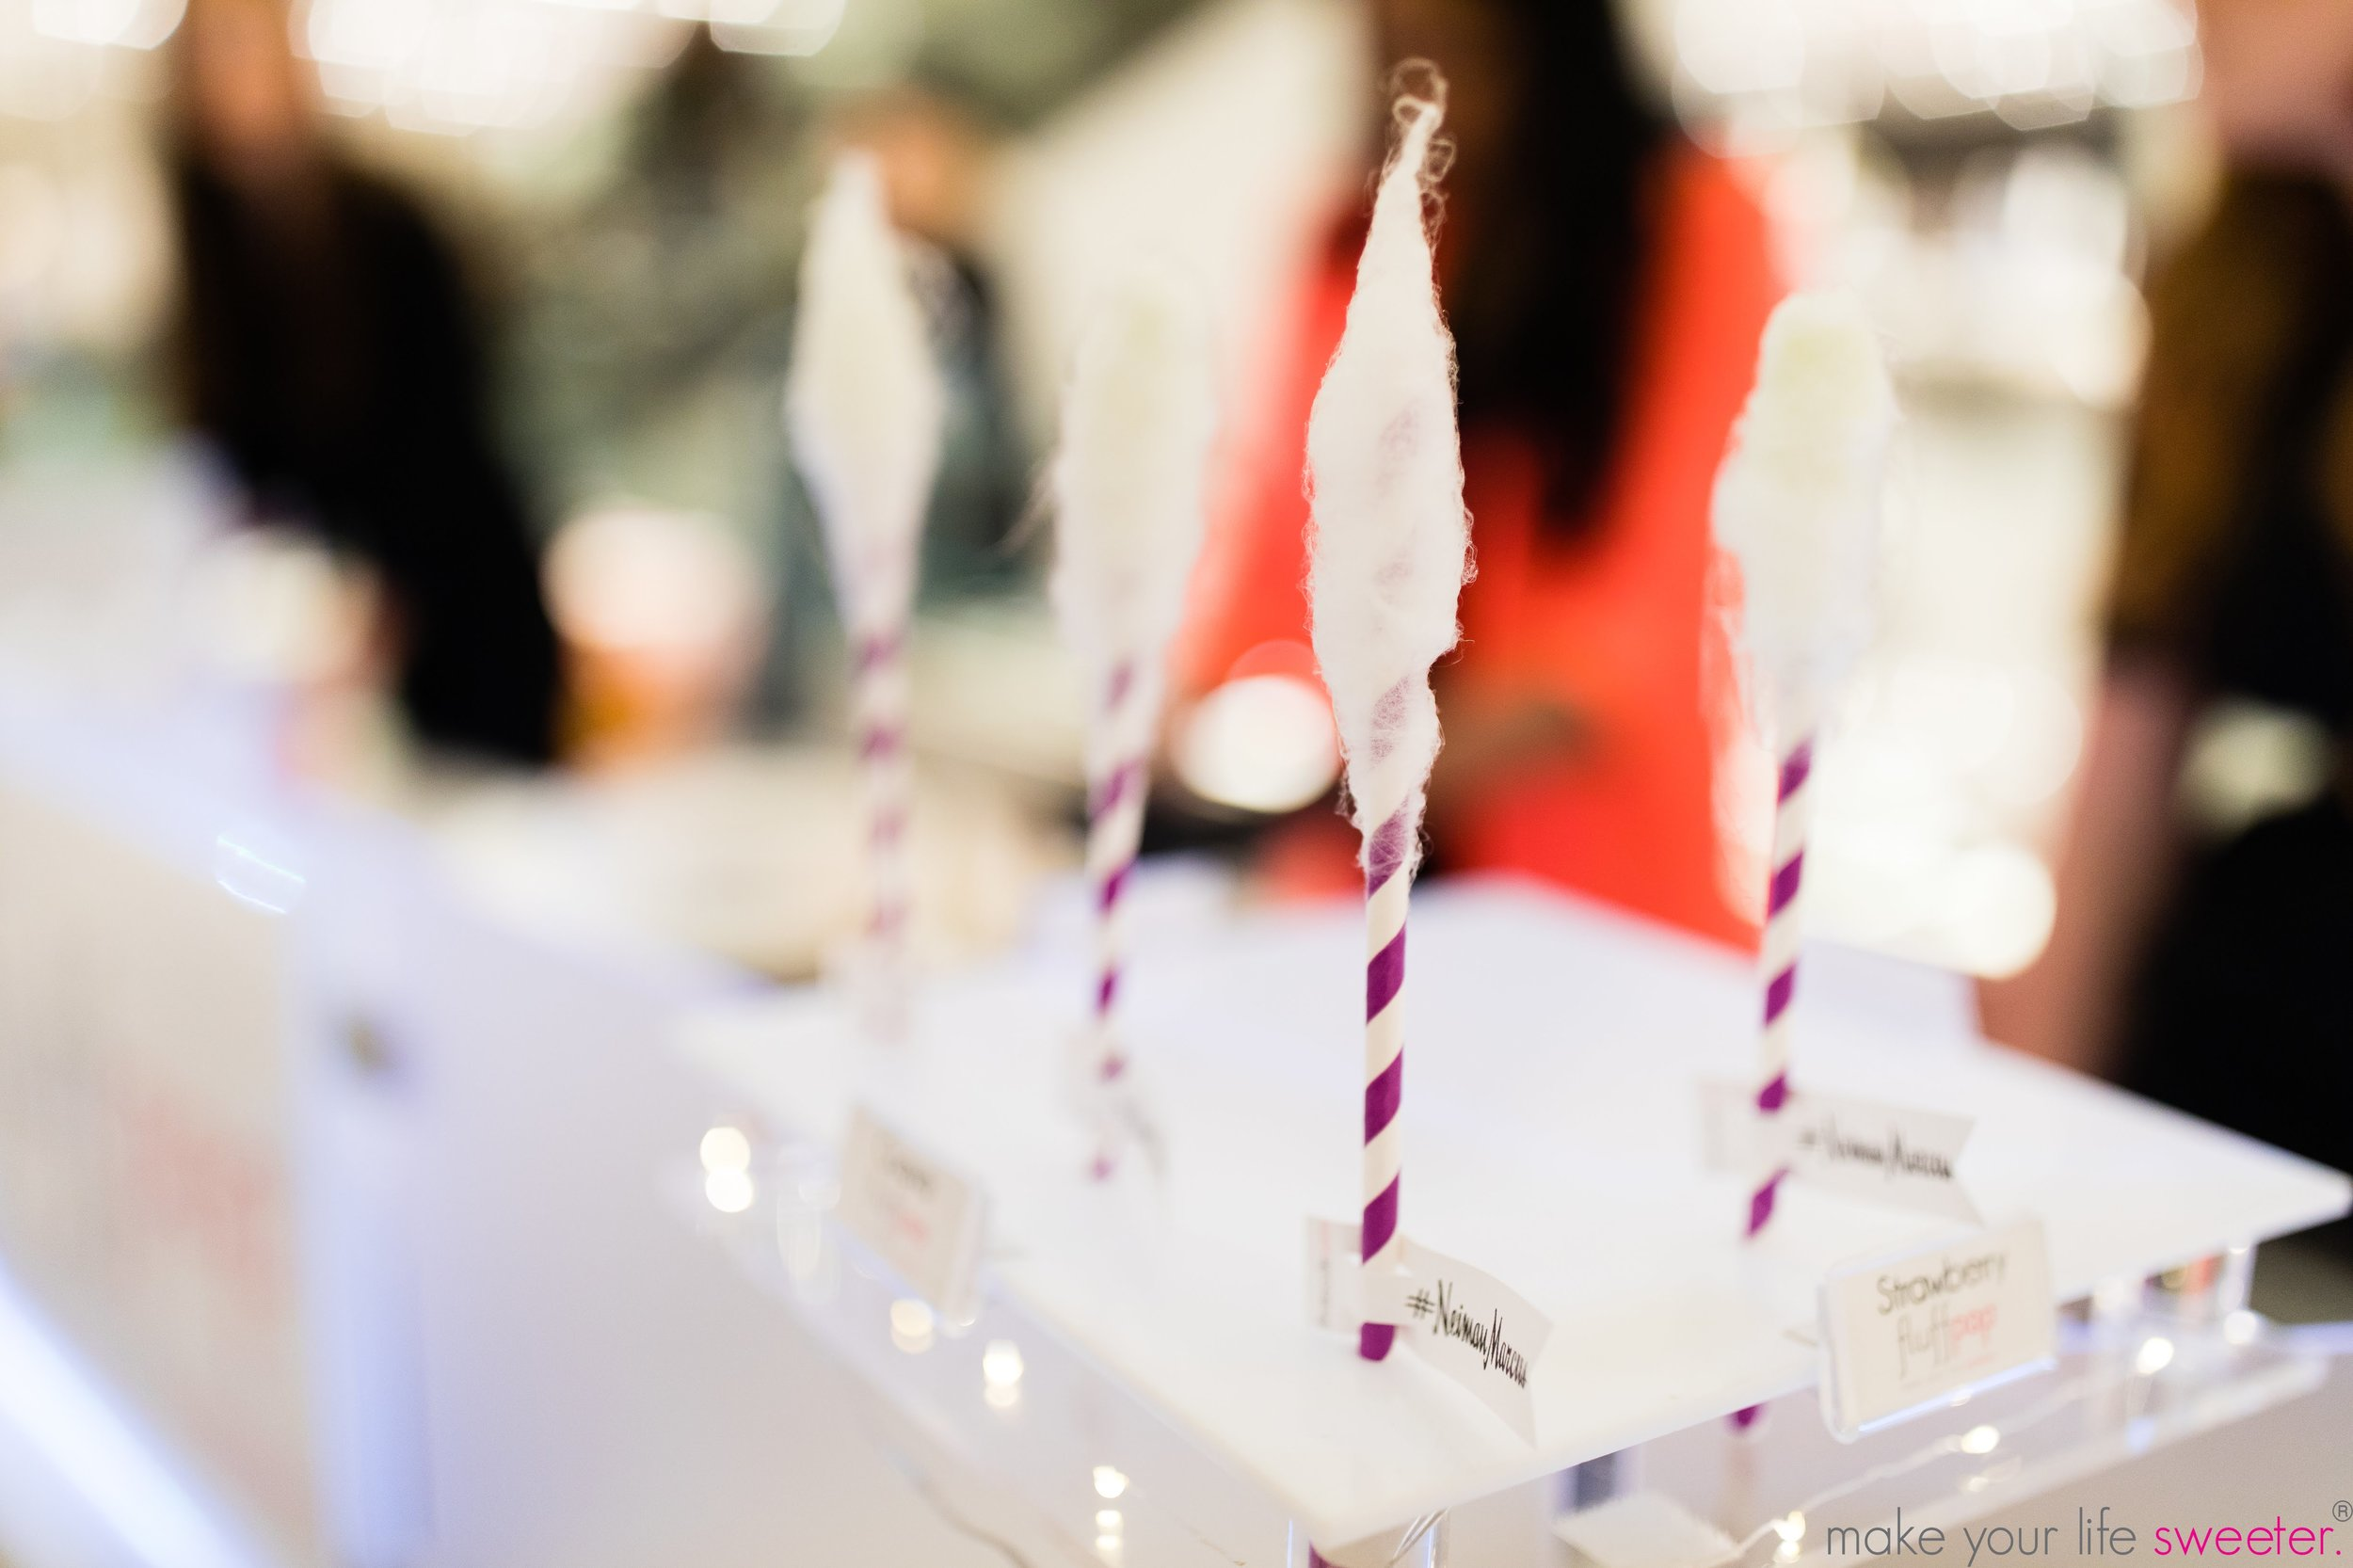 Make Your Life Sweeter Events - Neiman Marcus Hudson Yards Event - Fluffpop Artisanal Gourmet Cotton Candy